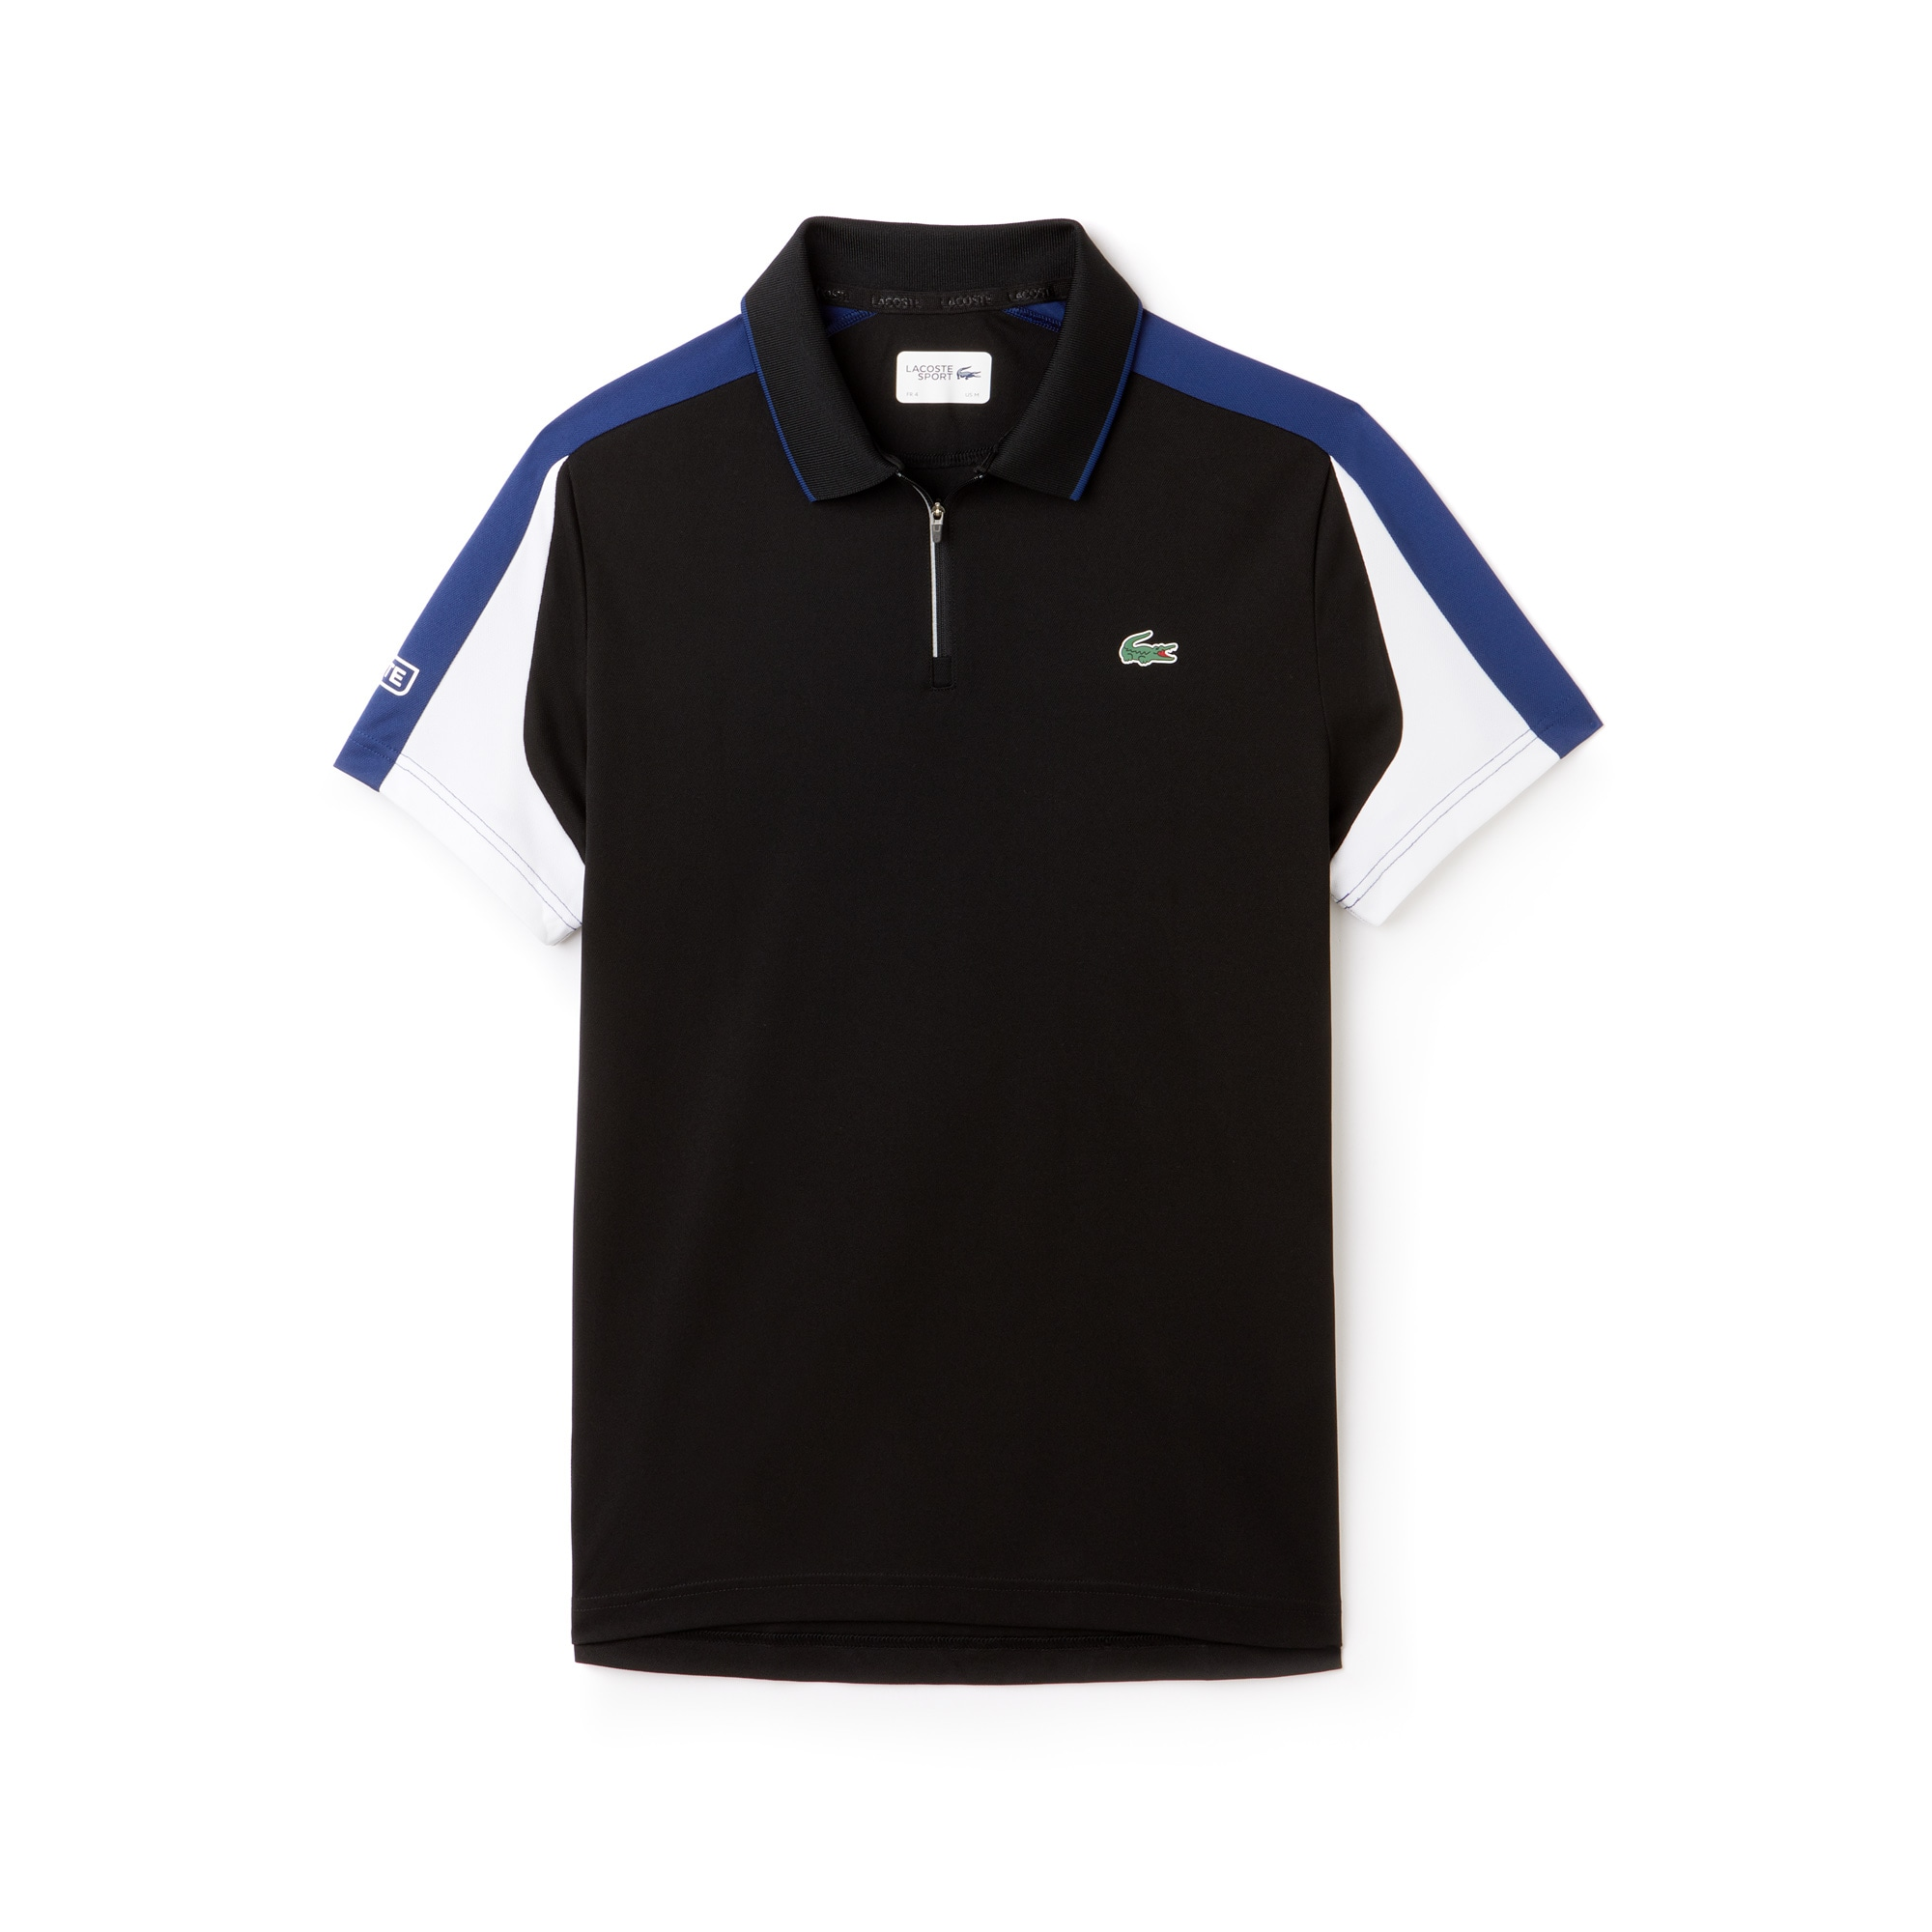 라코스테 Lacoste Mens SPORT Zip Neck Contrast Bands Pique Tennis Polo,black/inkwell-white-armou